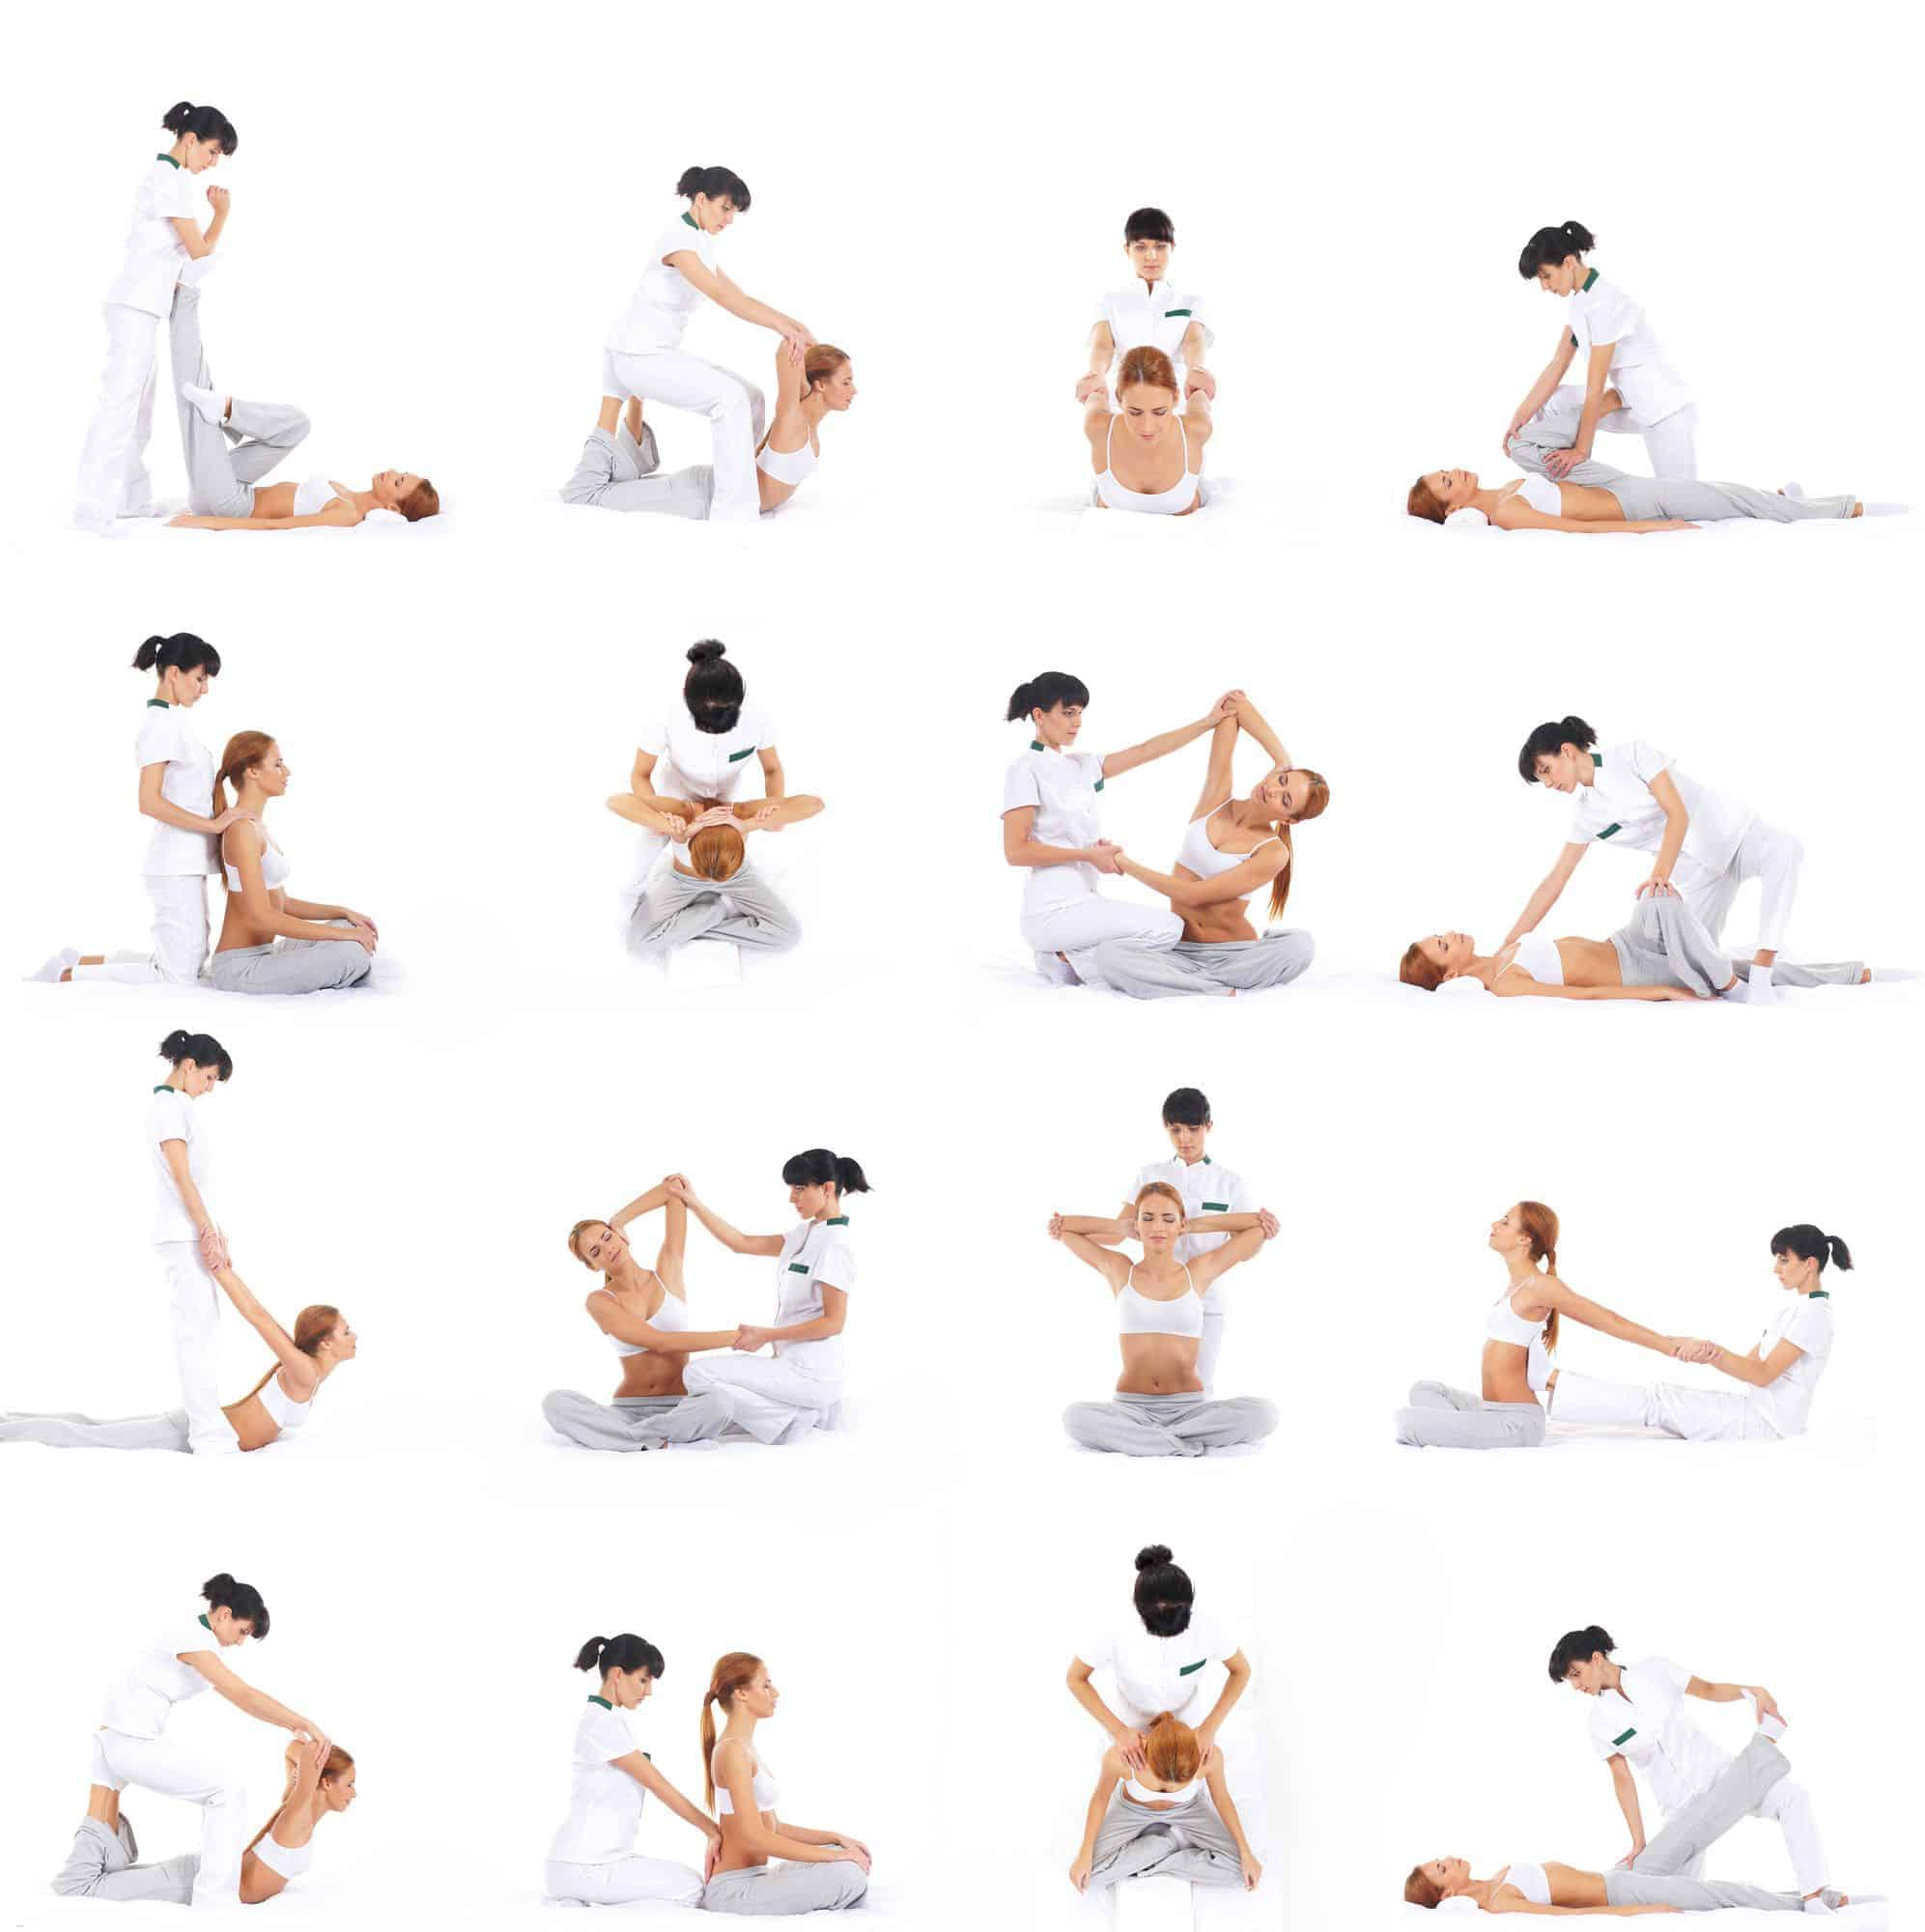 siamthala-trad-massage-step-by-step